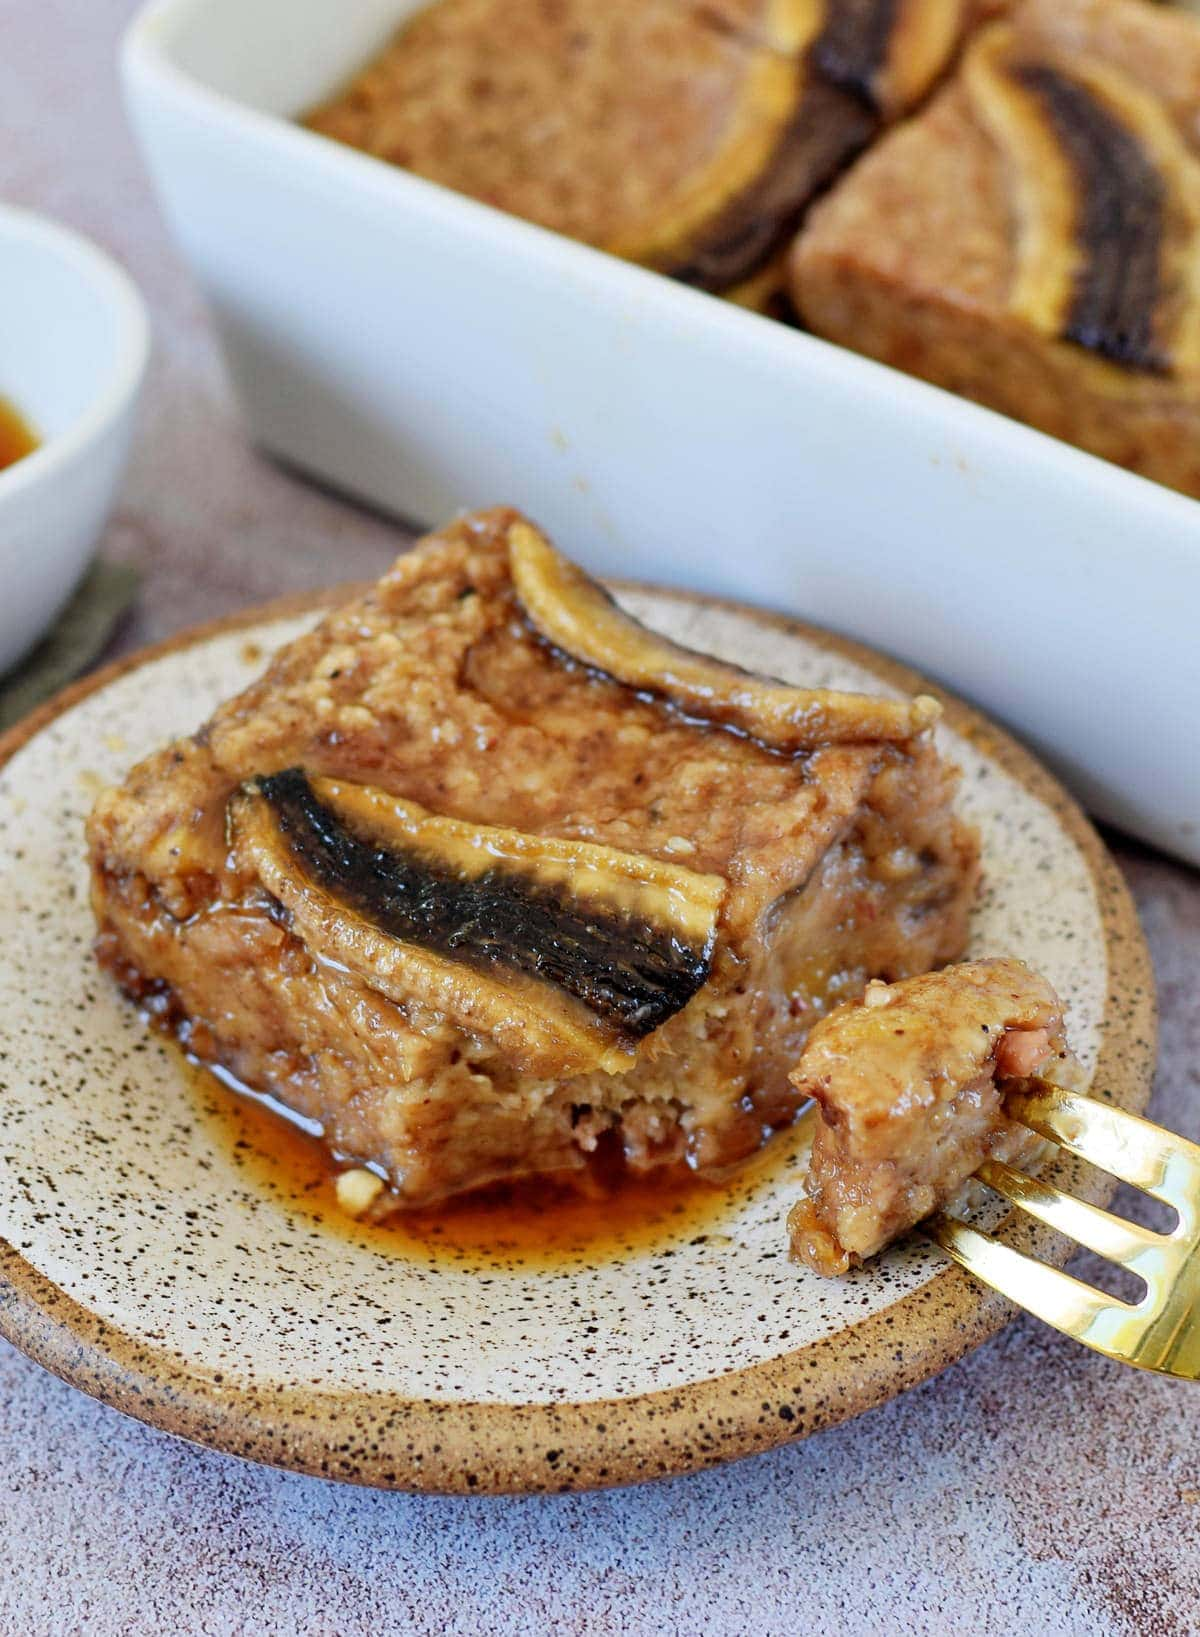 slice of baked oatmeal with caramelized banana on small plate with fork